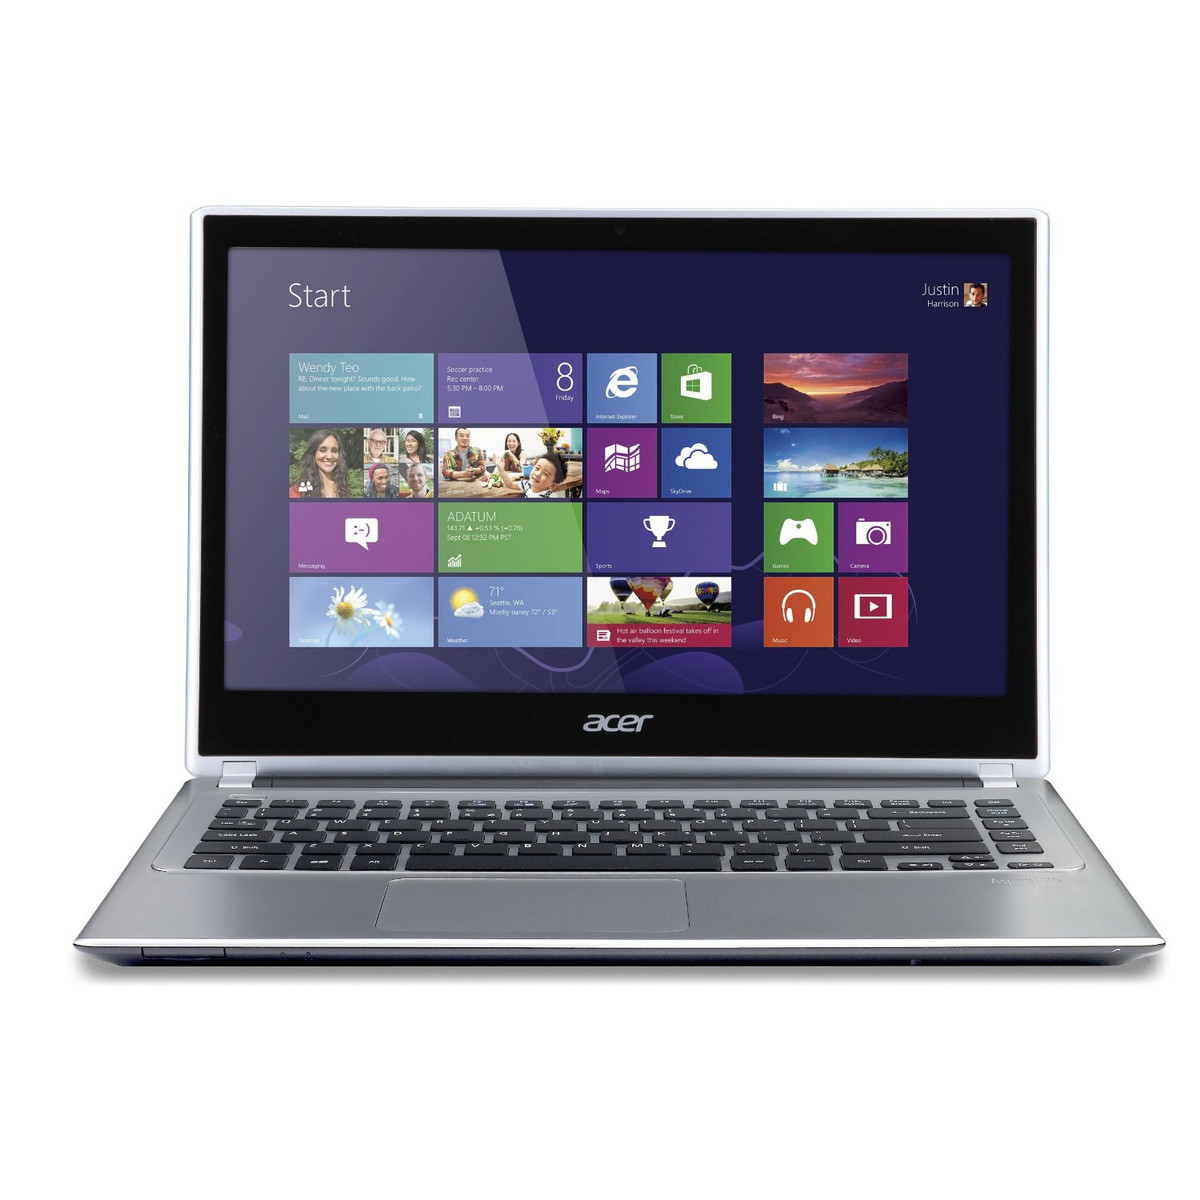 Notebook: Acer Aspire V5-431P-987B4G50Mass ( Aspire V5 Series )